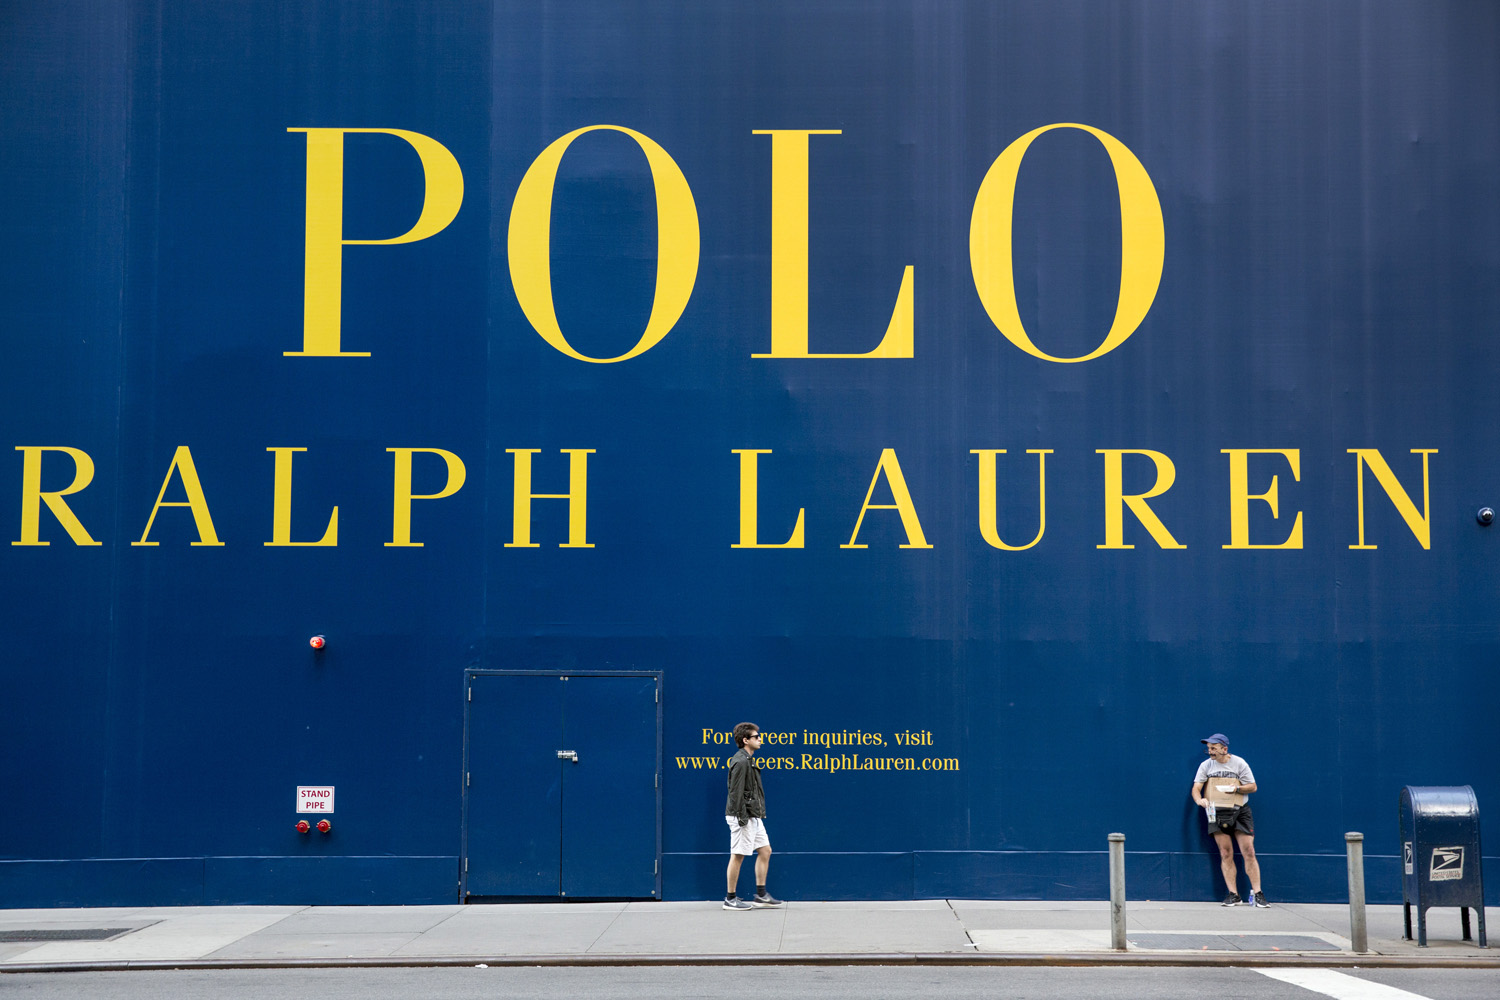 A man is seen next to a construction site of a new Ralph Lauren flagship store on Fifth Avenue, New York, June 21, 2014.